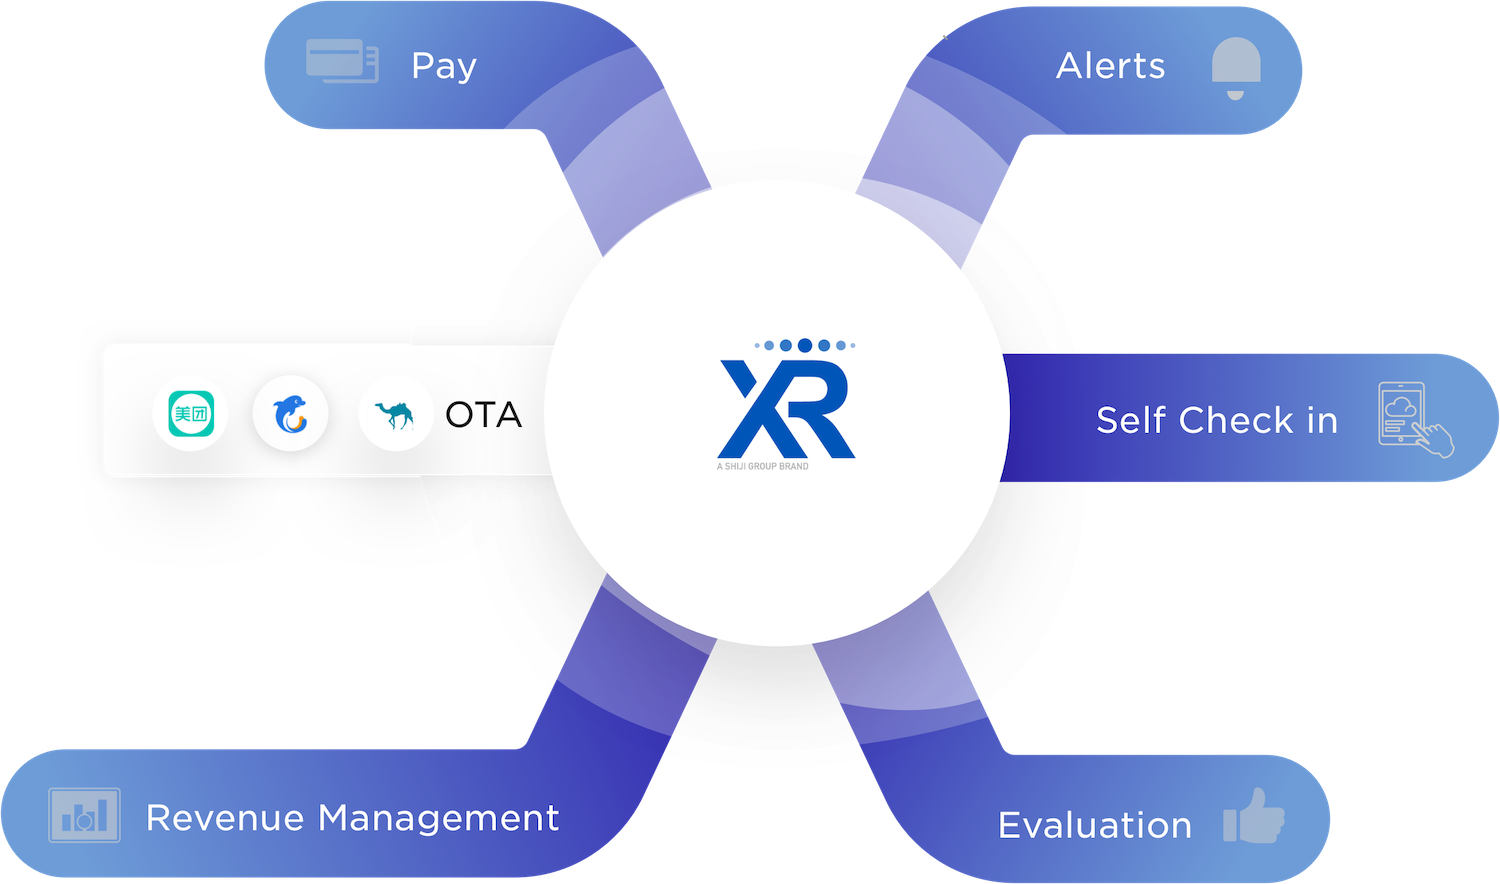 About XR - Four and five star hotel management software